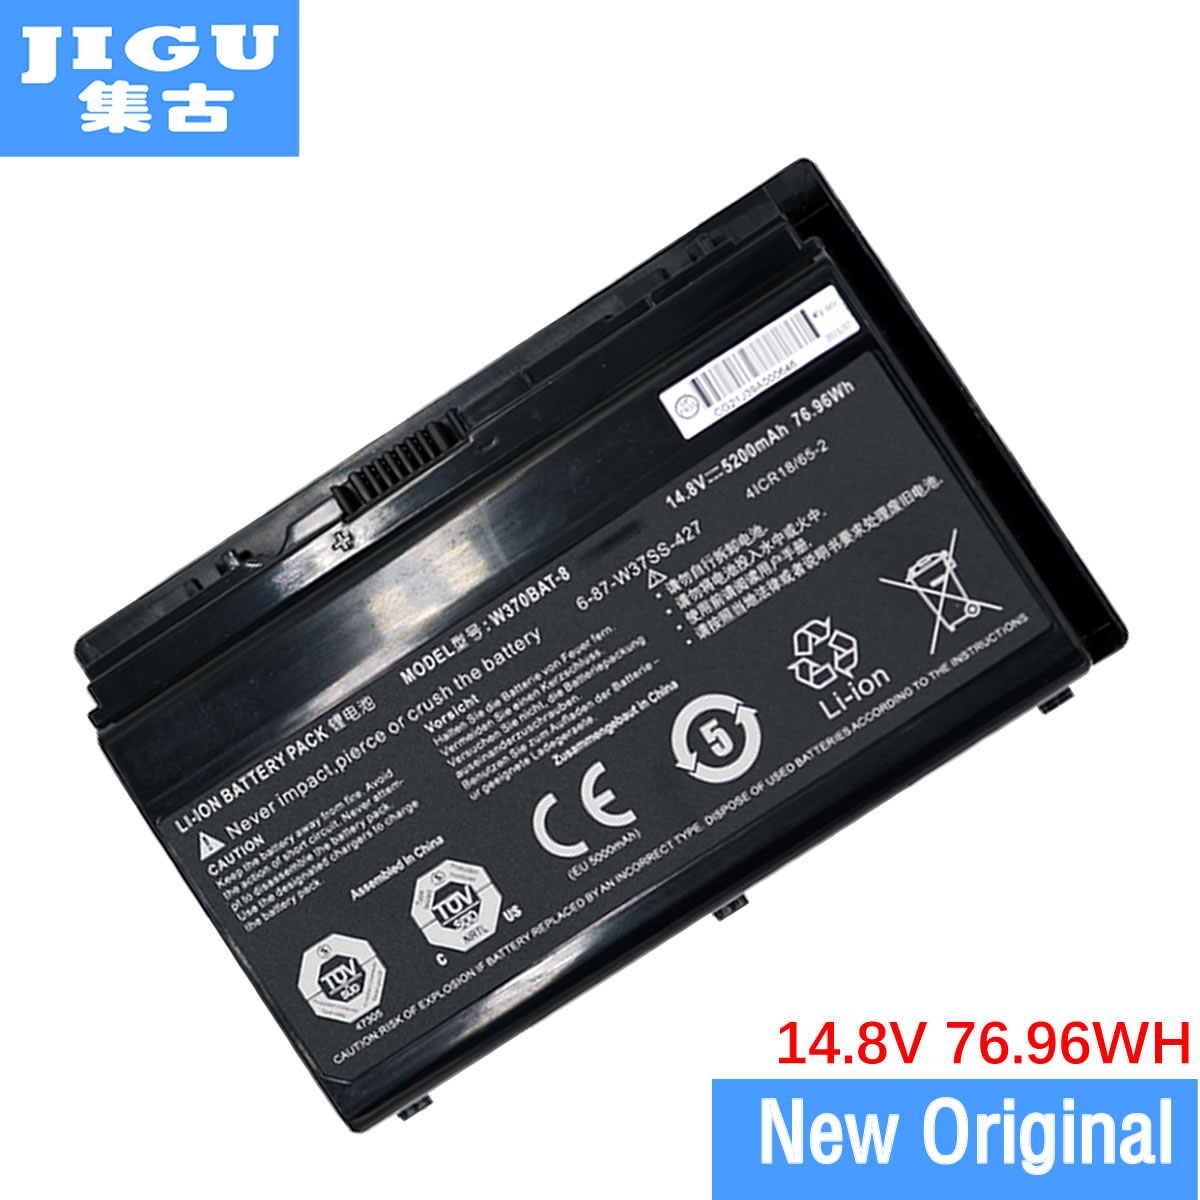 JIGU W370bat-8 Battery For Clevo W350et W350etq W370et Sager Np6350 Np6370 Xmg A522 Xmg Xmg A722 6-87-w370s-4271 genuine new original cable fit for clevo w370et lcd cable 6 43 w3701 010 k 6 43 w3701 011 k